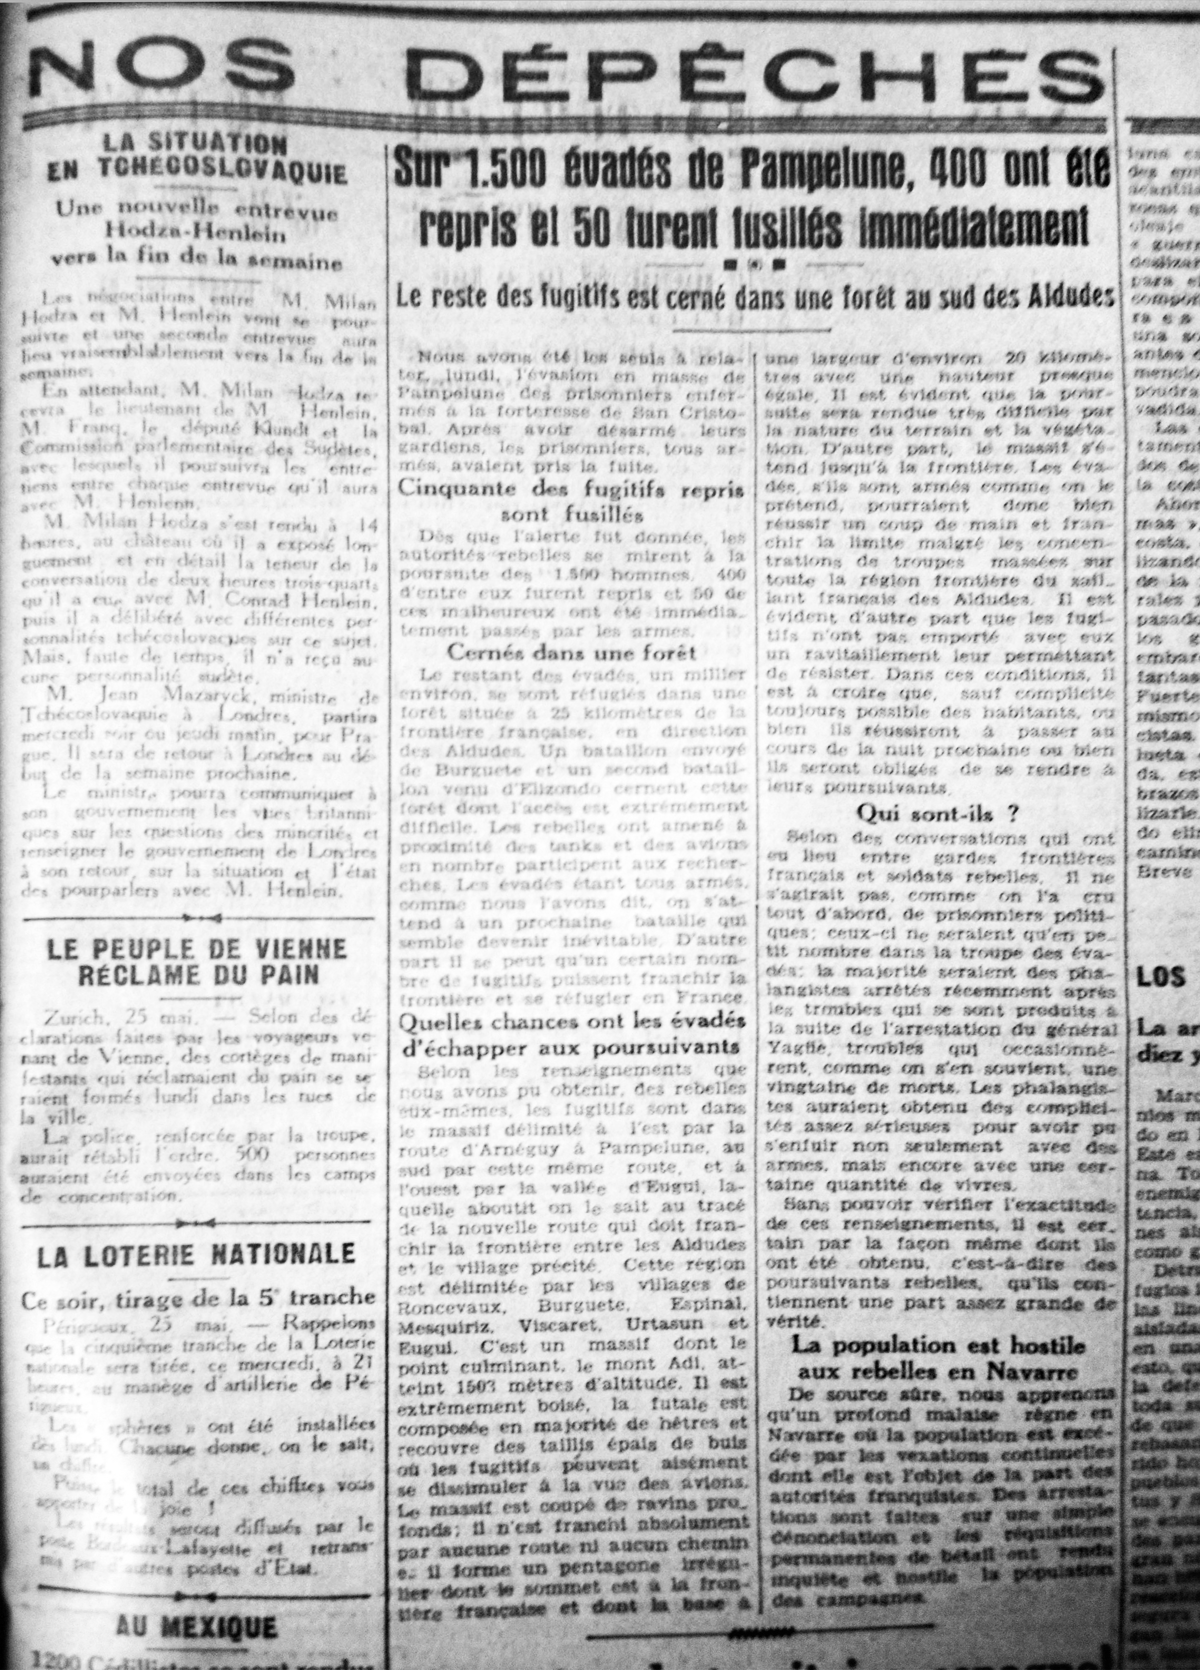 Sud-Ouest, 25 mayo 1938